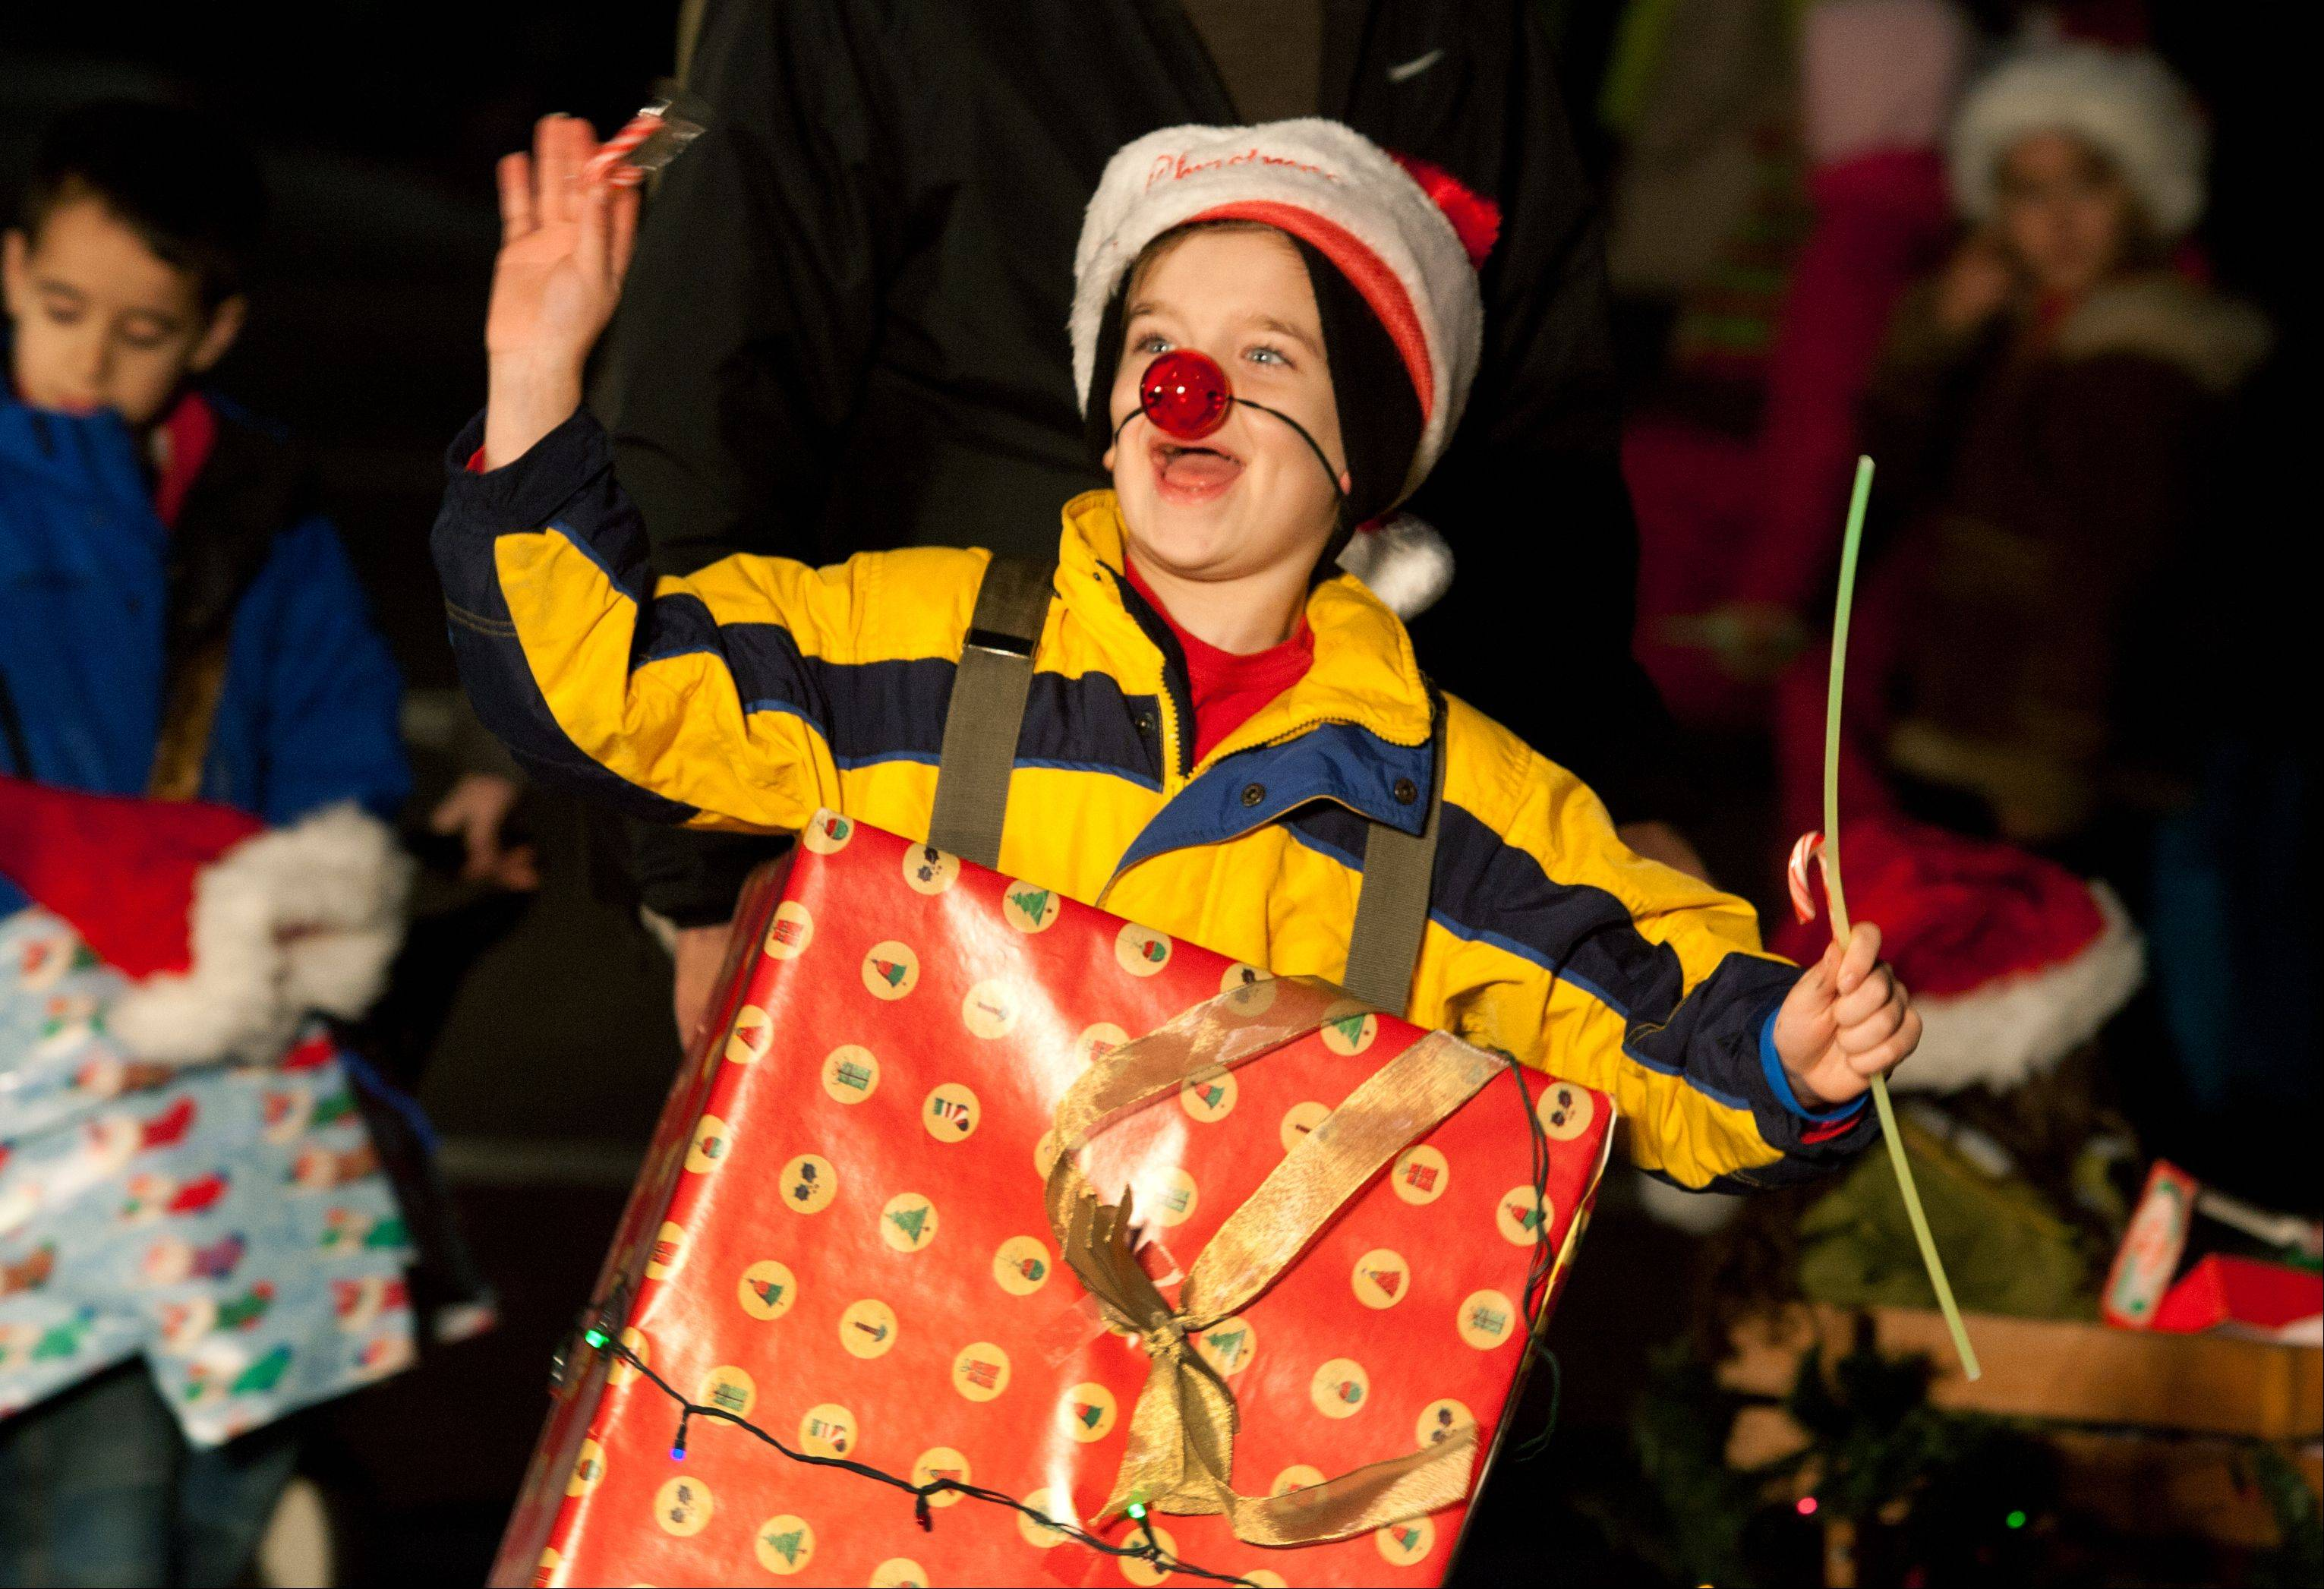 Cub Scout Pack 317's Brian Beutell, along with other members from Patterson School, march in Naperville's Hometown Holiday Celebration, featuring the Little Friends Parade of Lights.